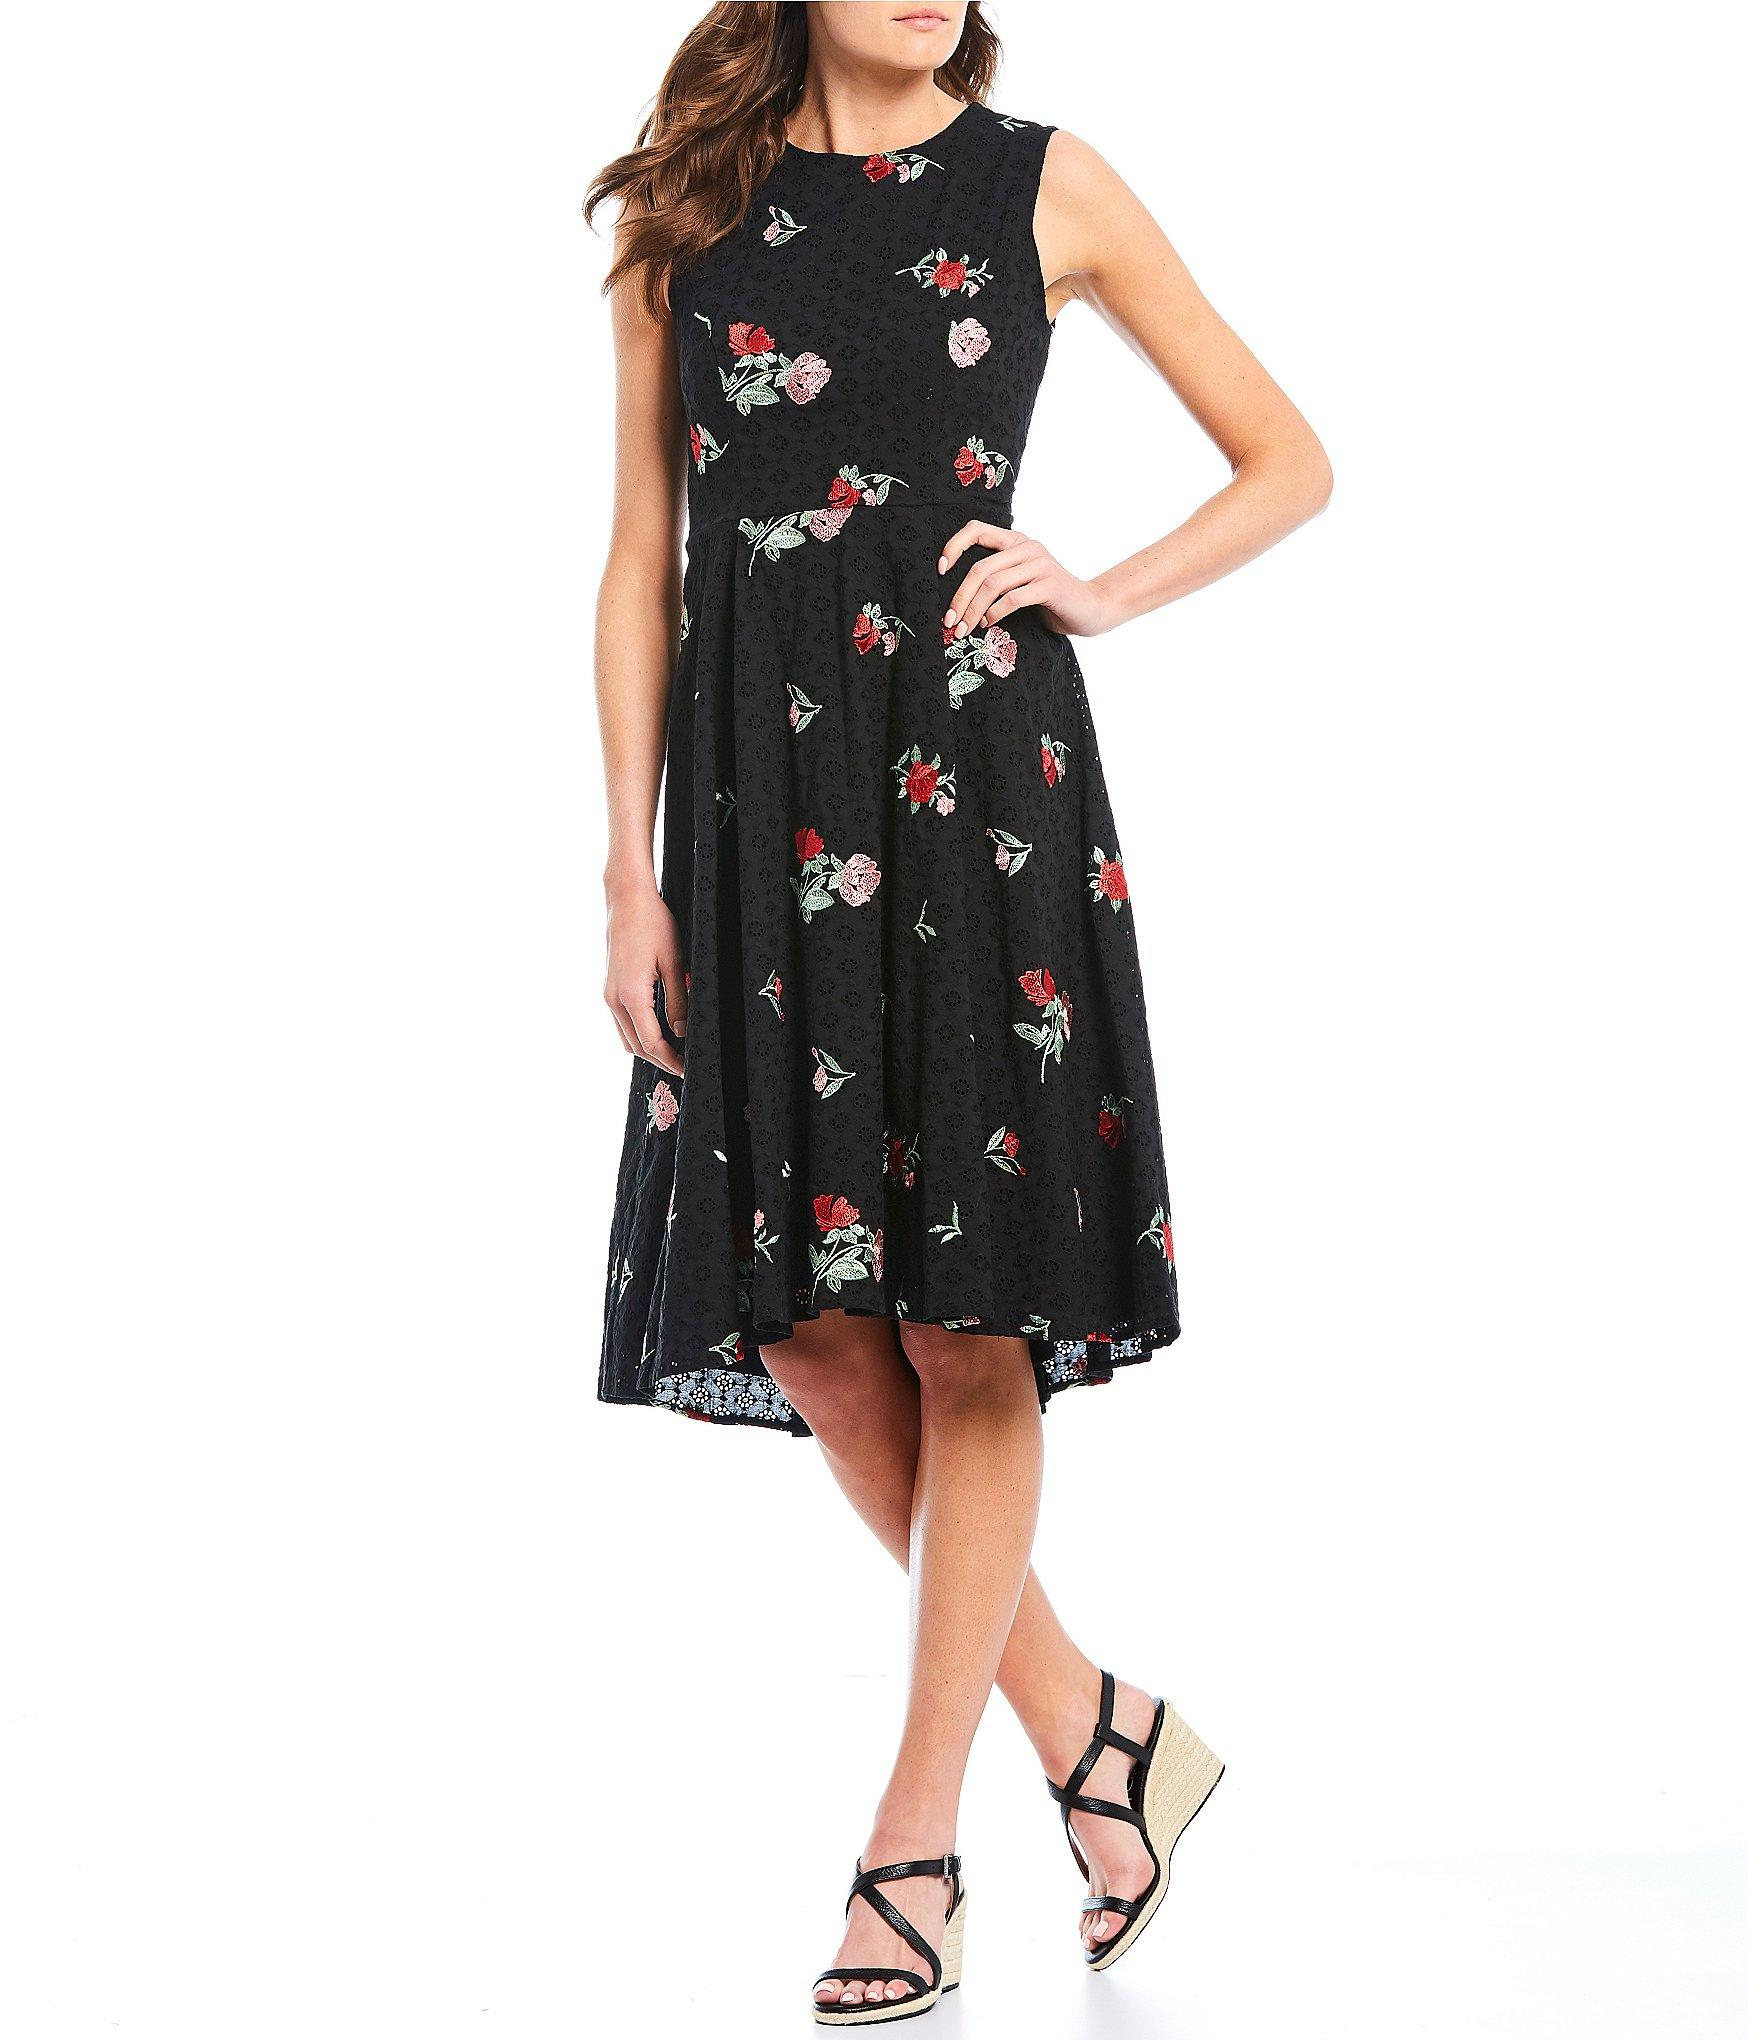 e428878a00a Lyst - Calvin Klein Floral Embroidered Eyelet Hi-low Midi Dress in Black